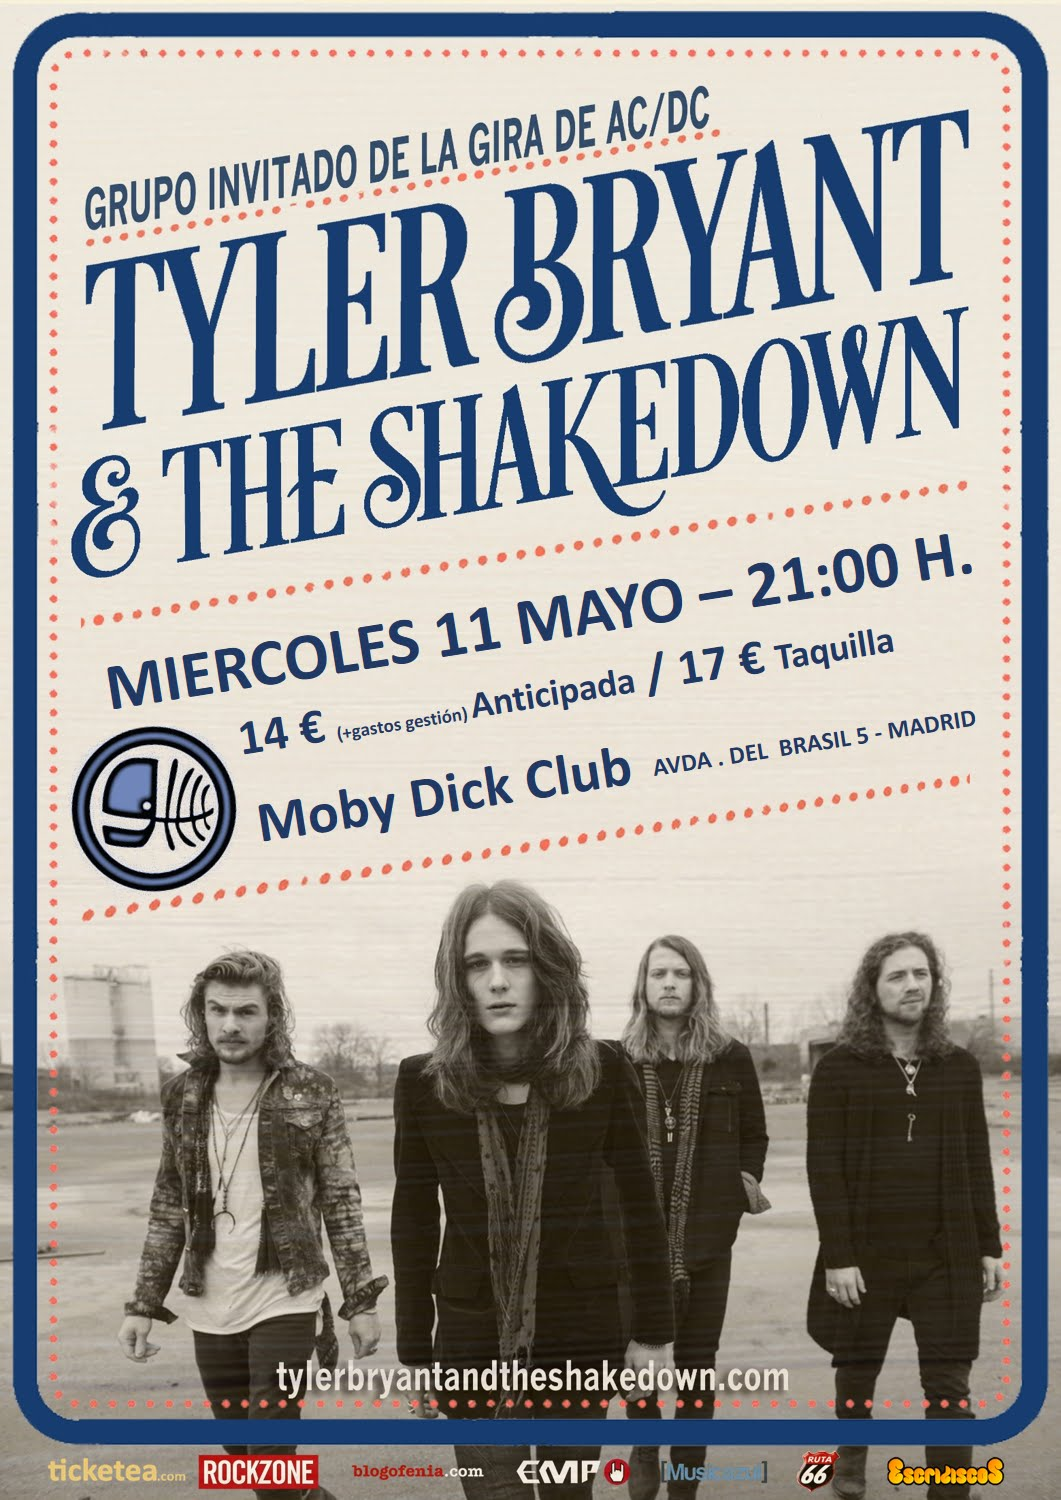 Tyler Bryant & The Shakedown - Moby Dick Club - 11/05/2016